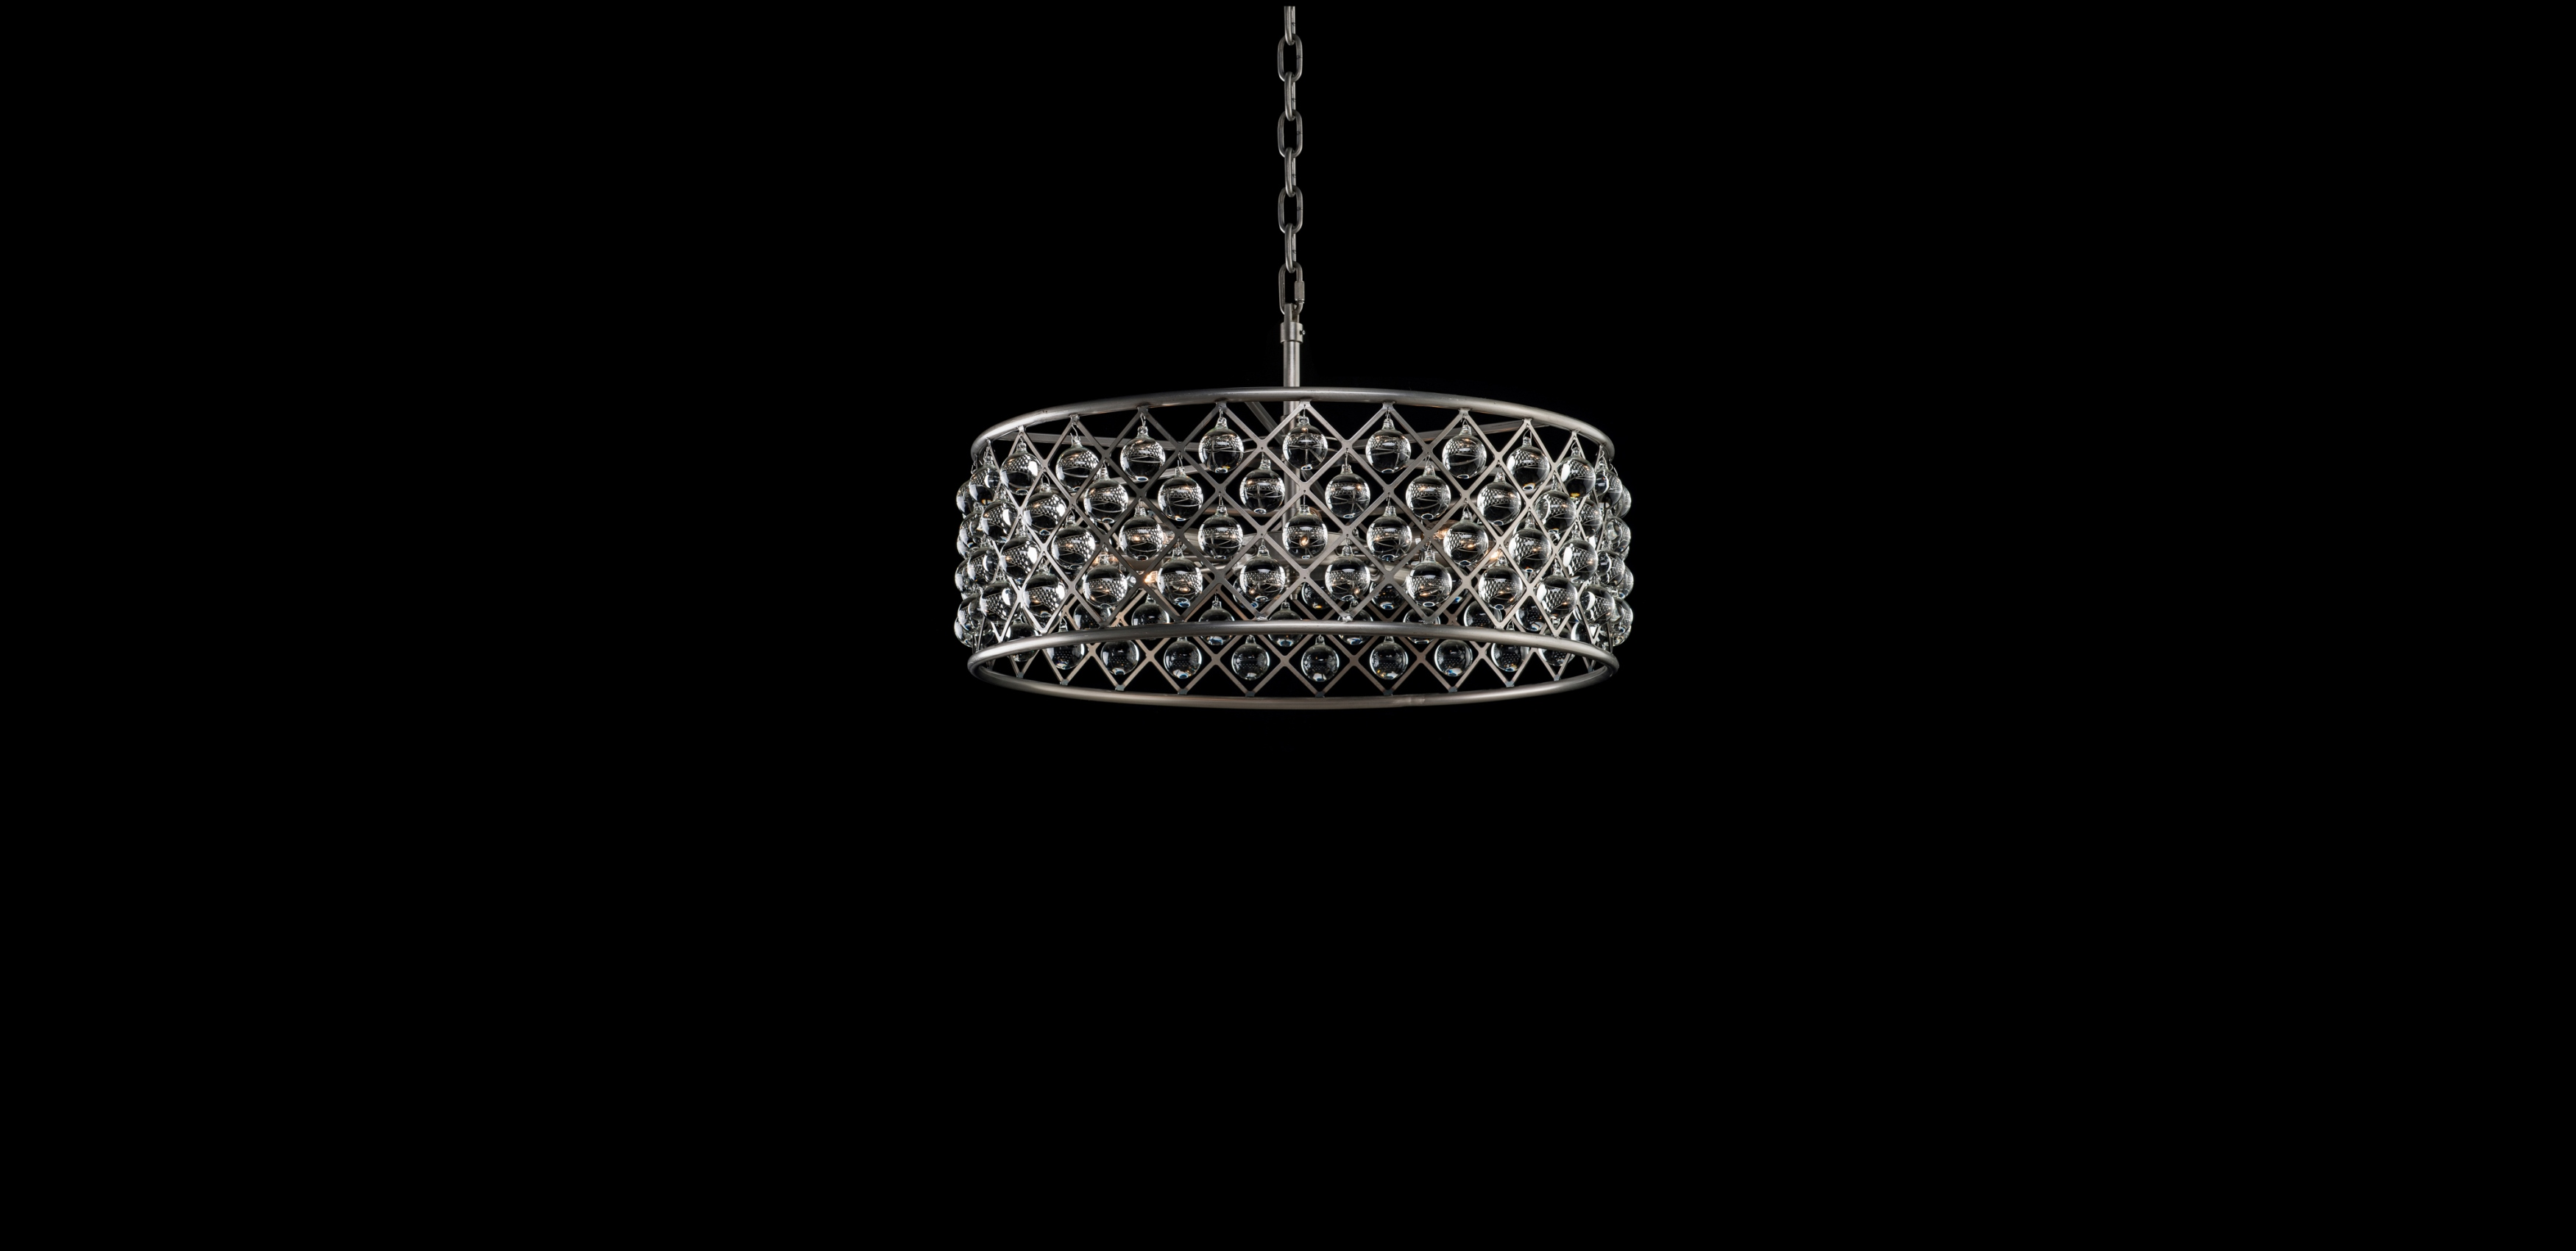 furniture obj max lamp canaletto chandelier model glass fbx pendant voltolina murano models mtl chandeliers